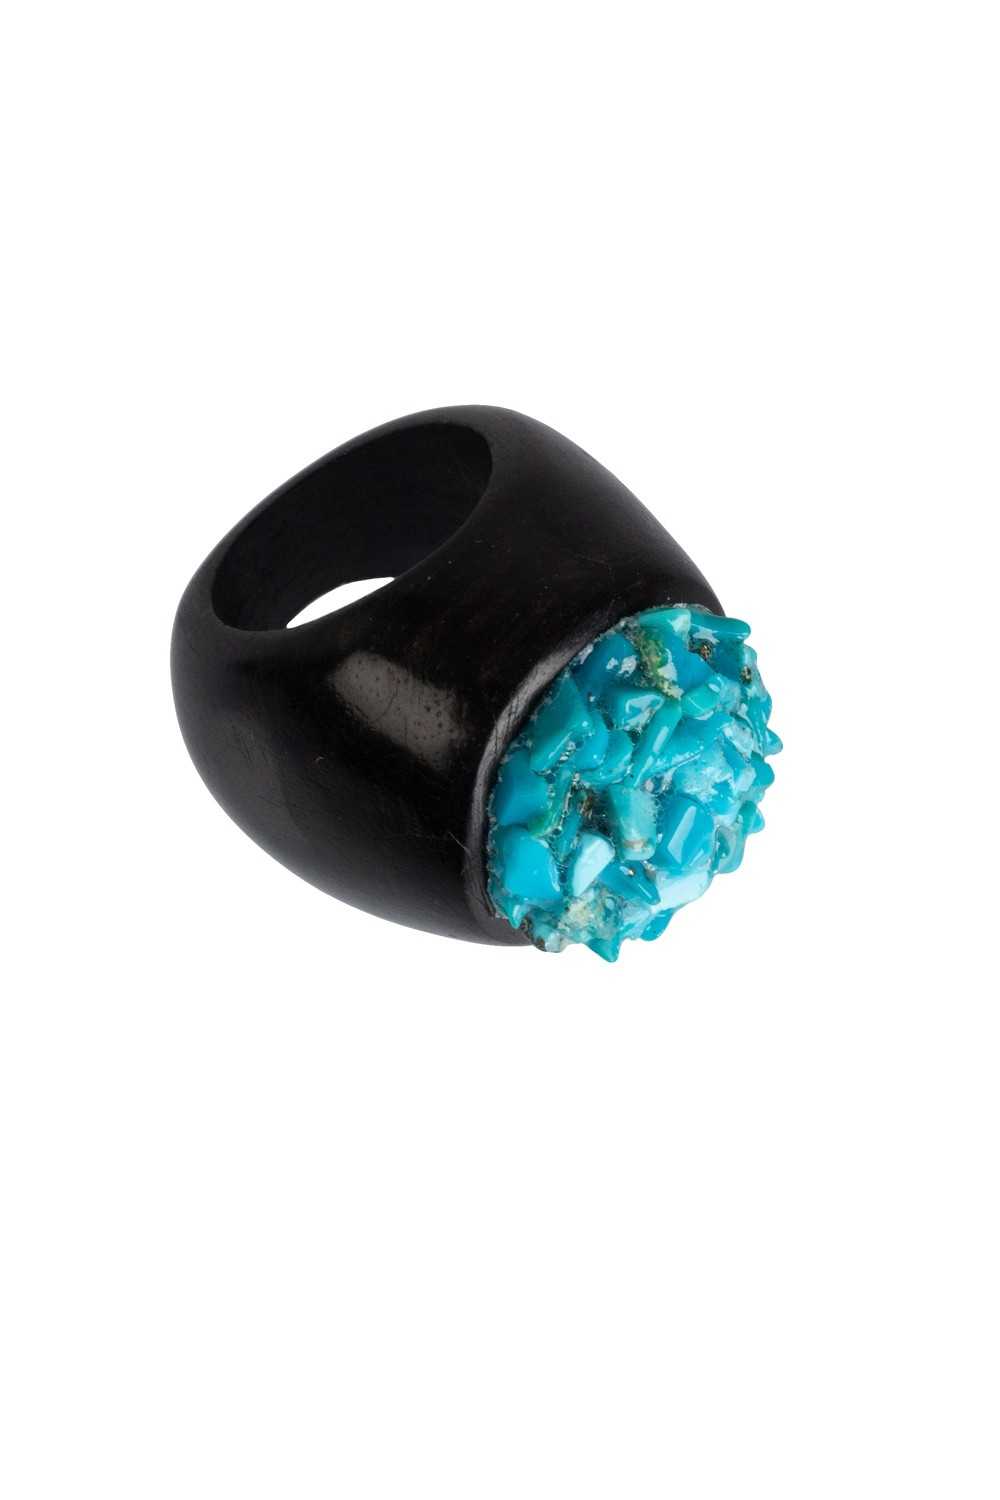 Anello in ebano con chips in Turchese   - Ebony ring with Turquoise chips